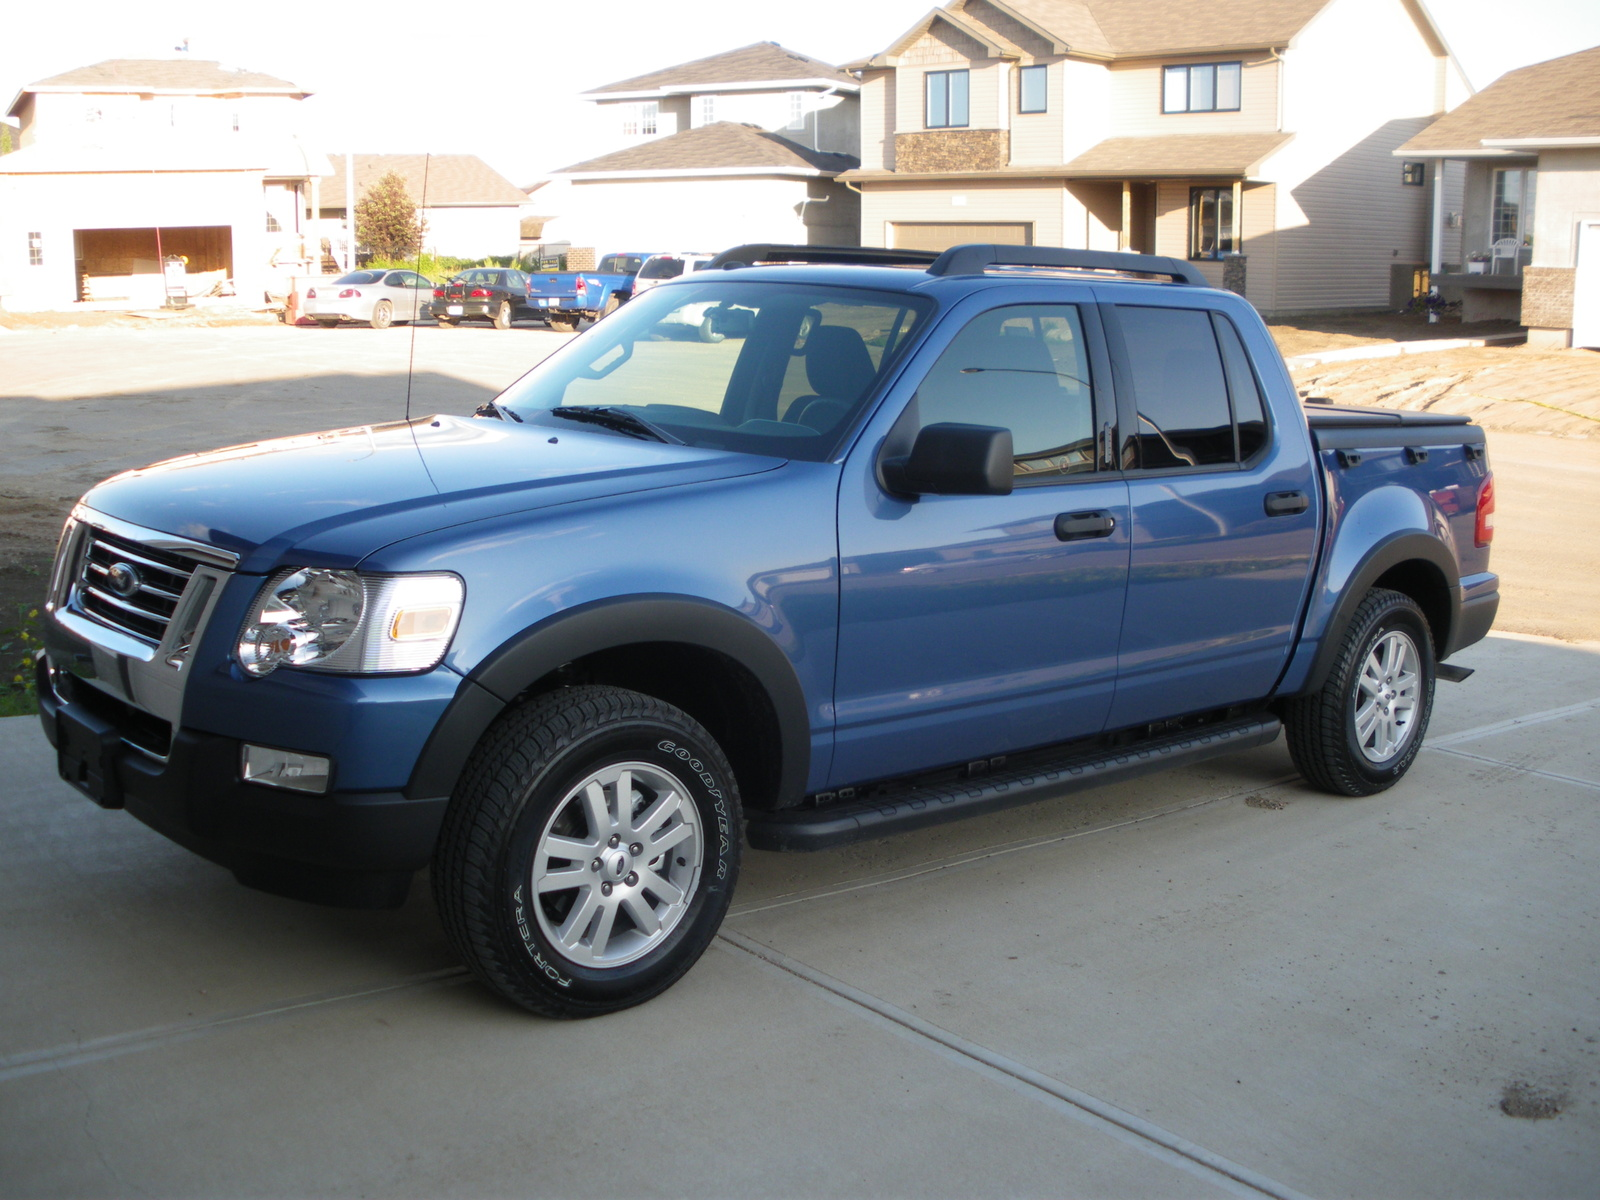 2005 ford explorer sport trac image 13